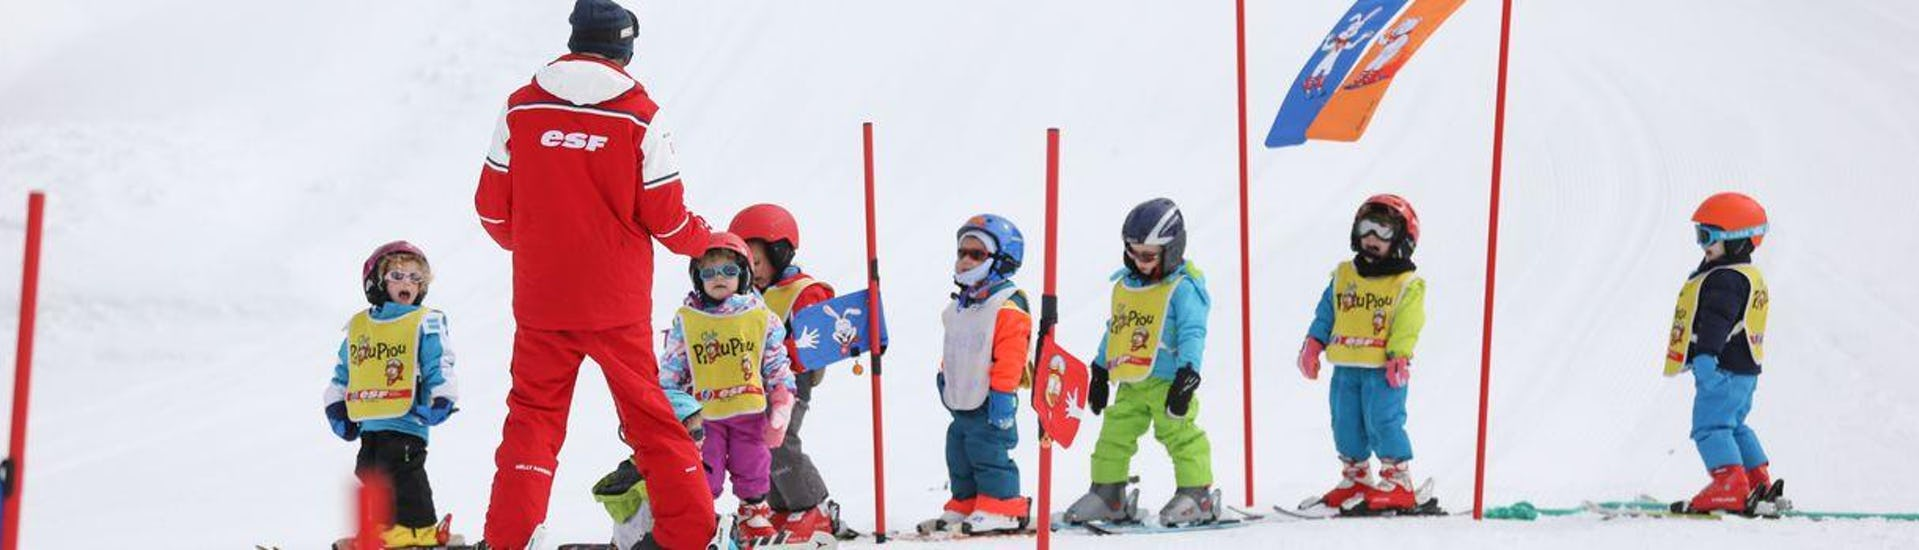 "Kids are standing in line learning to find their balance on skis during their Kids Ski Lessons ""Piou-Piou"" (3-5 y.) - February - Morning with the ski school ESF du Dévoluy."